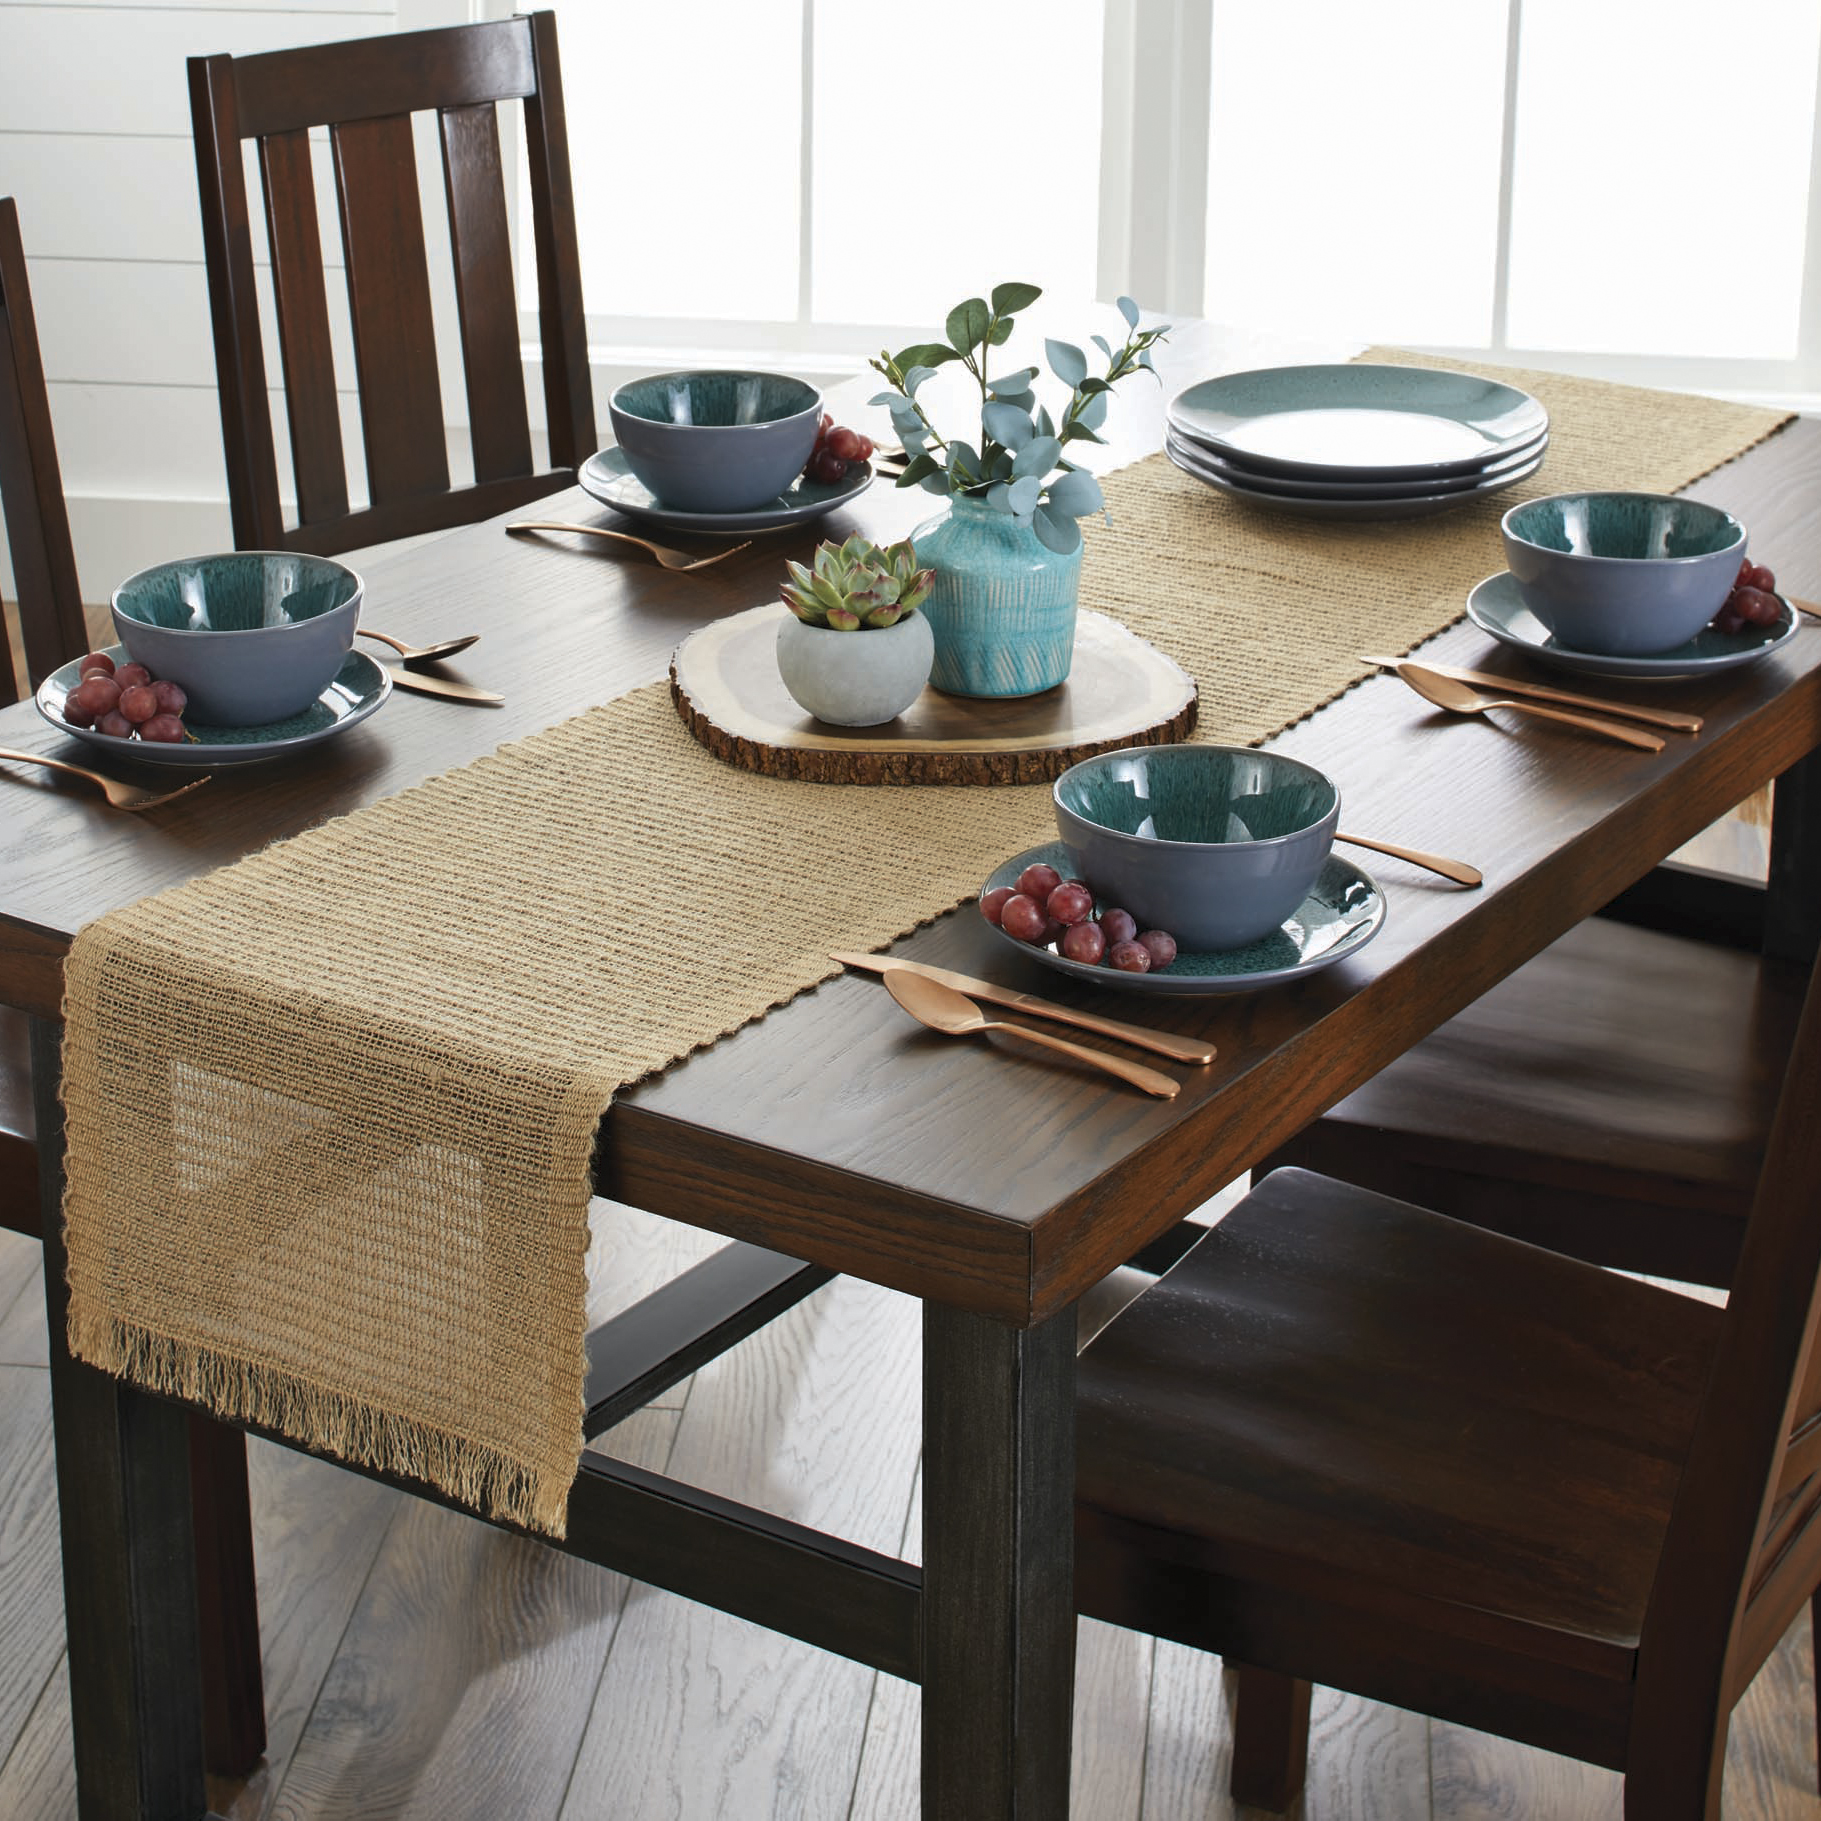 Table Runner Table Cloth Dining Table Mat Coffee Pads Home able Cover Decor  LP